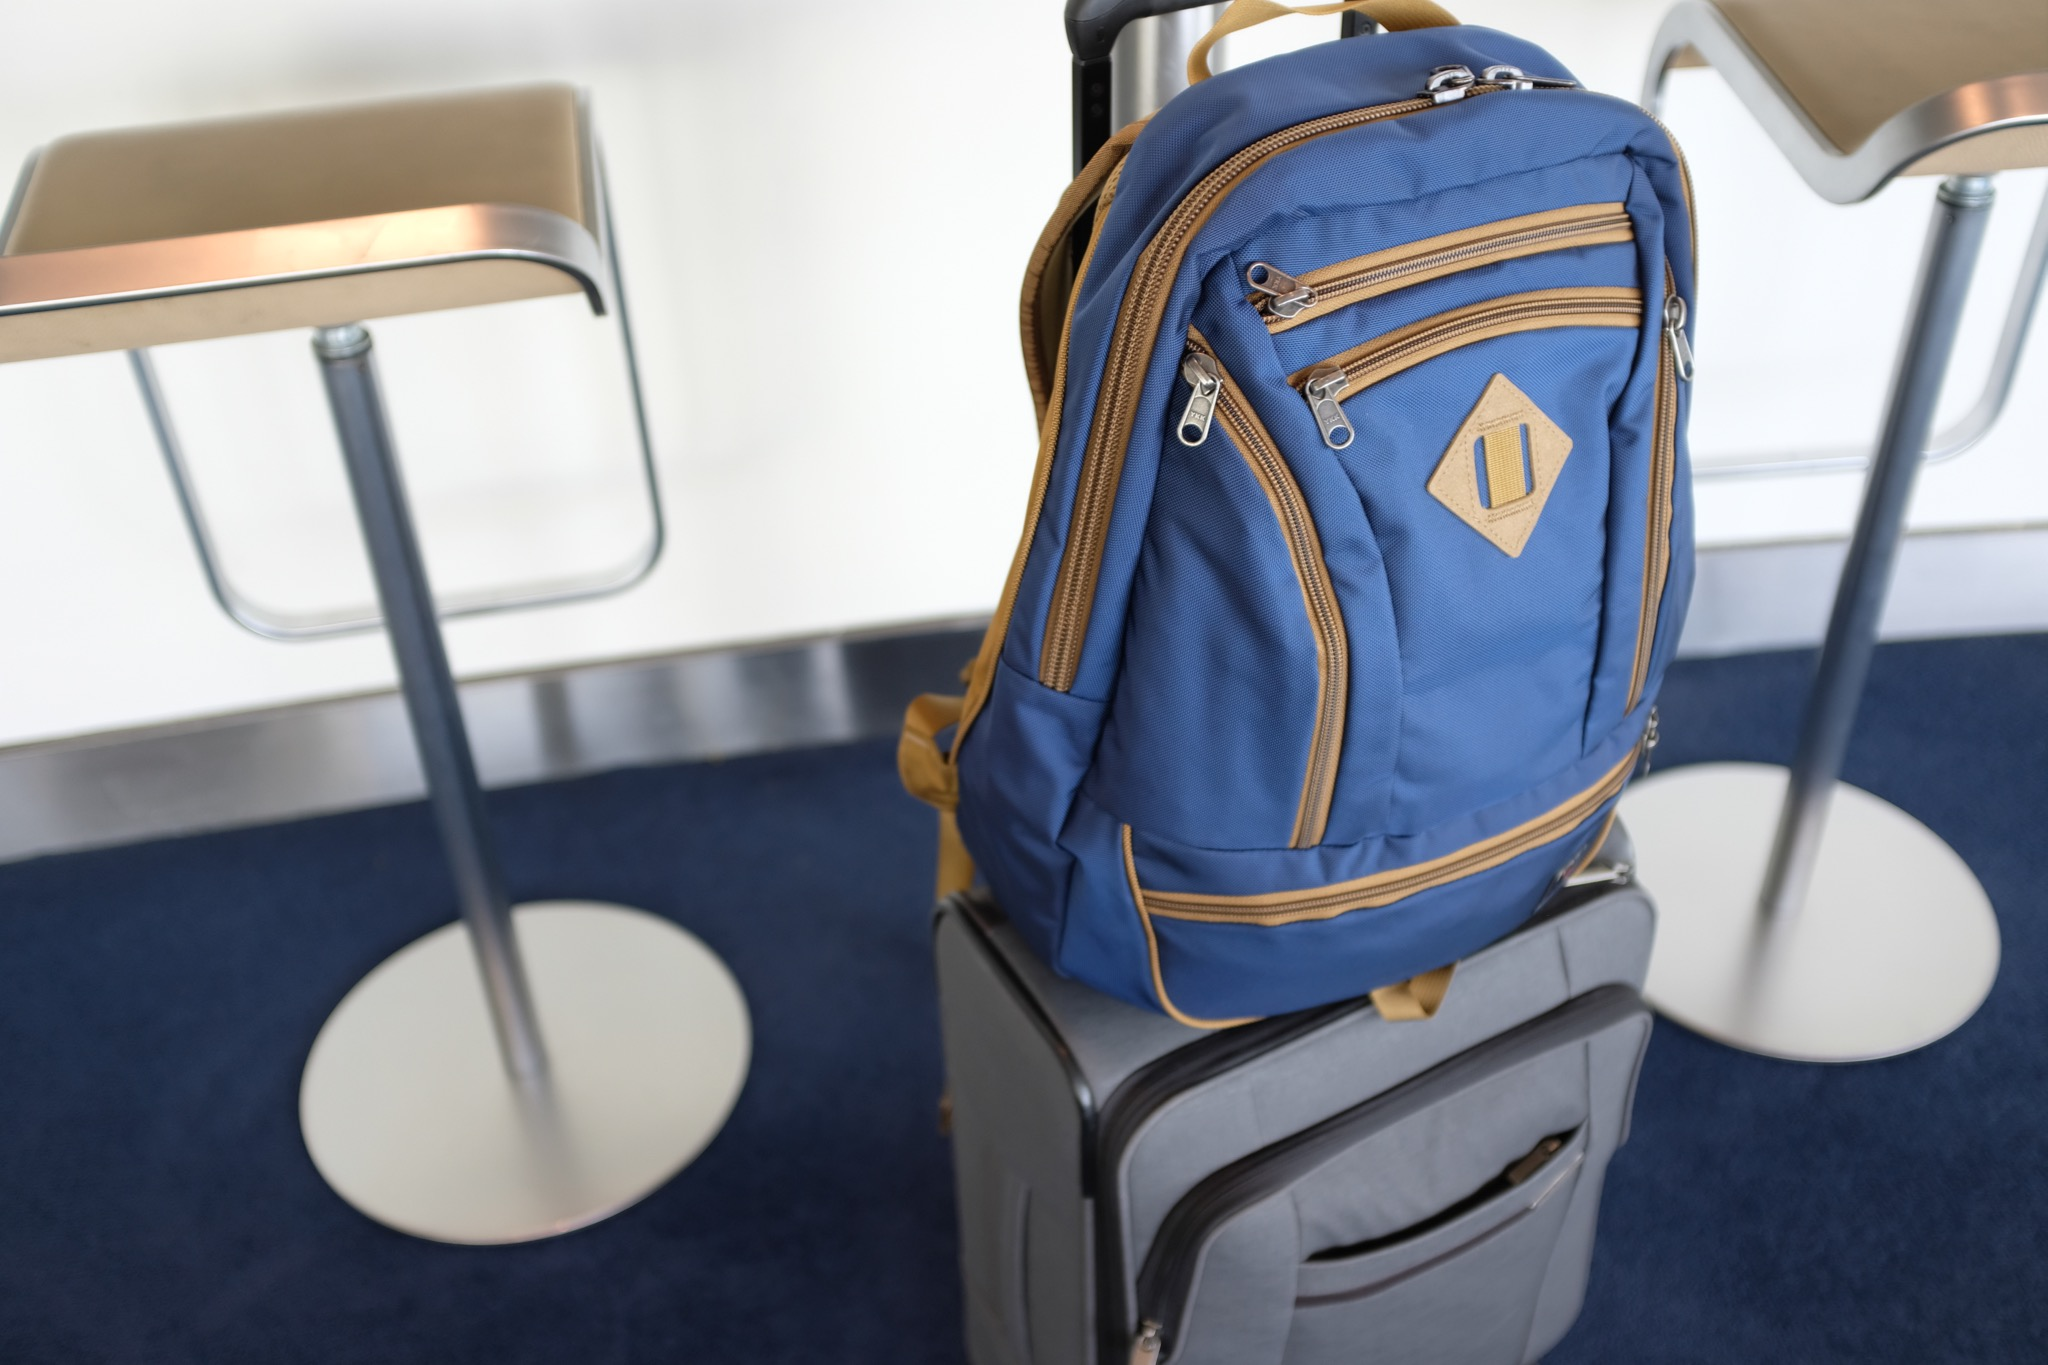 The Guide's Edition sits perfectly on a rolling bag, however it doesn't have any luggage handle straps